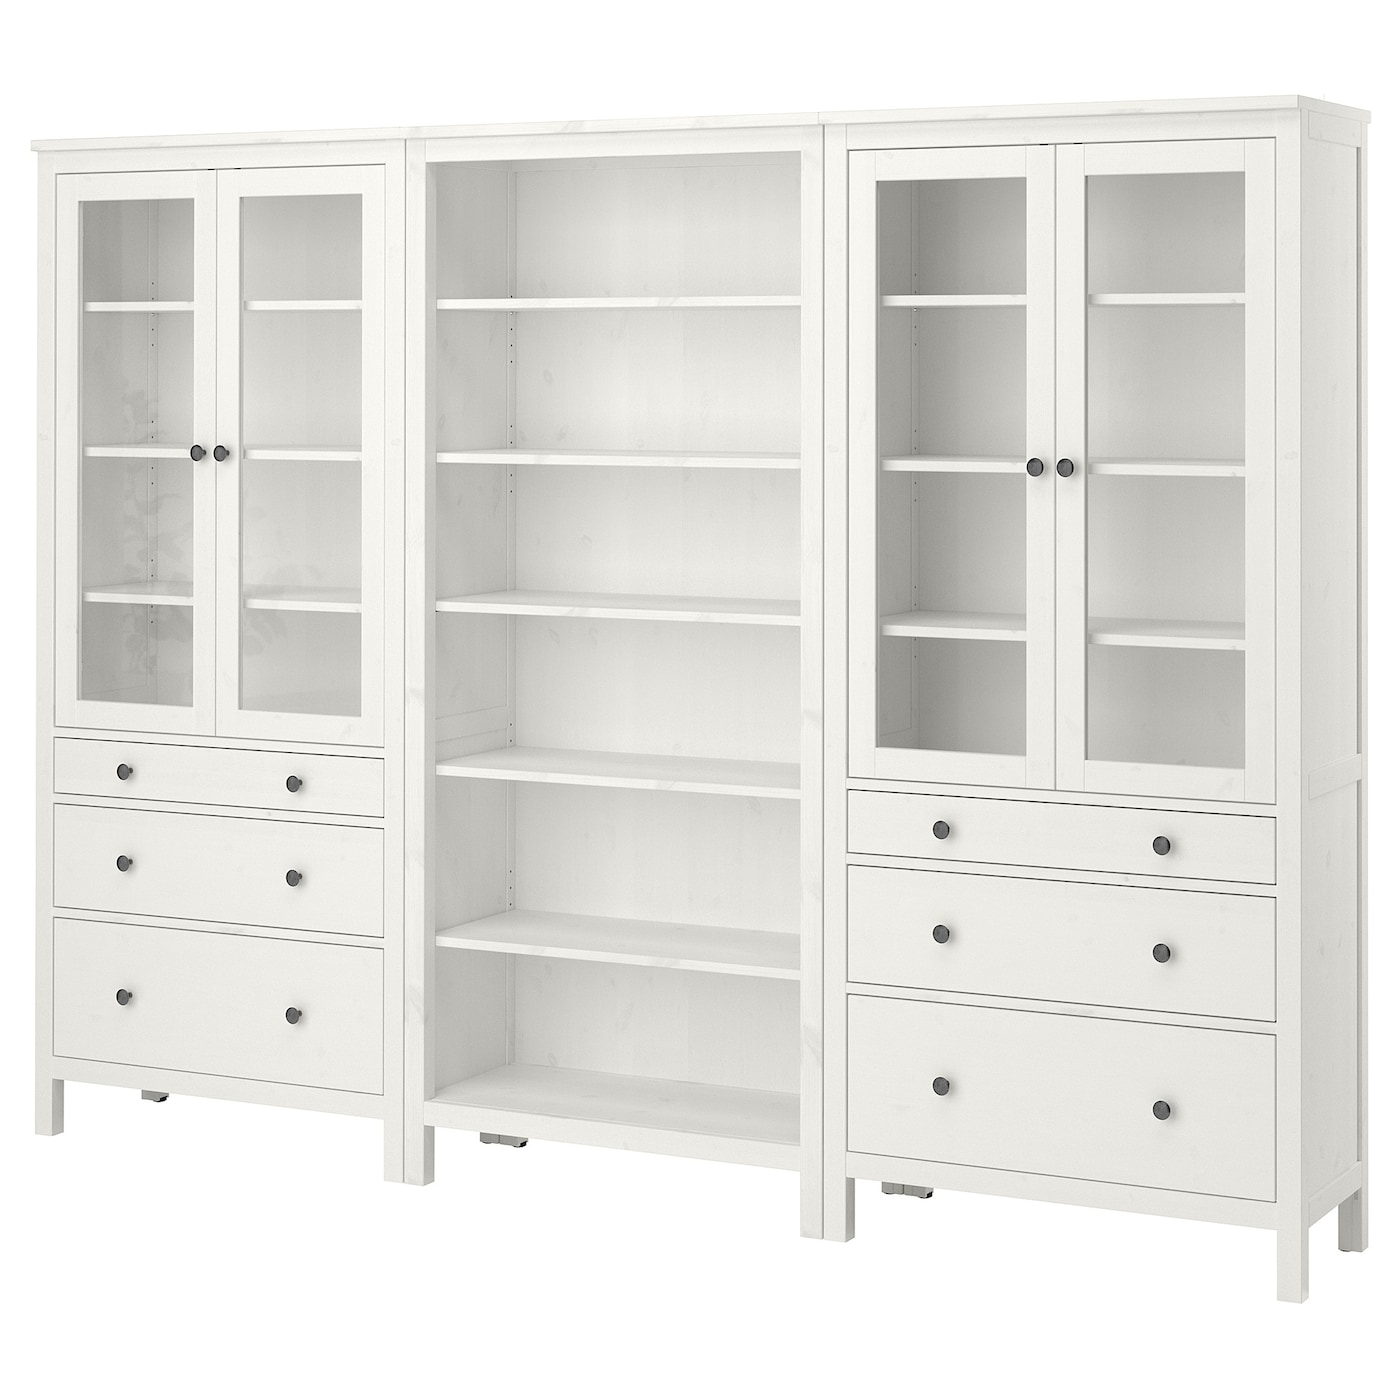 Ikea hemnes storage combination w doors drawers solid wood has a natural feel